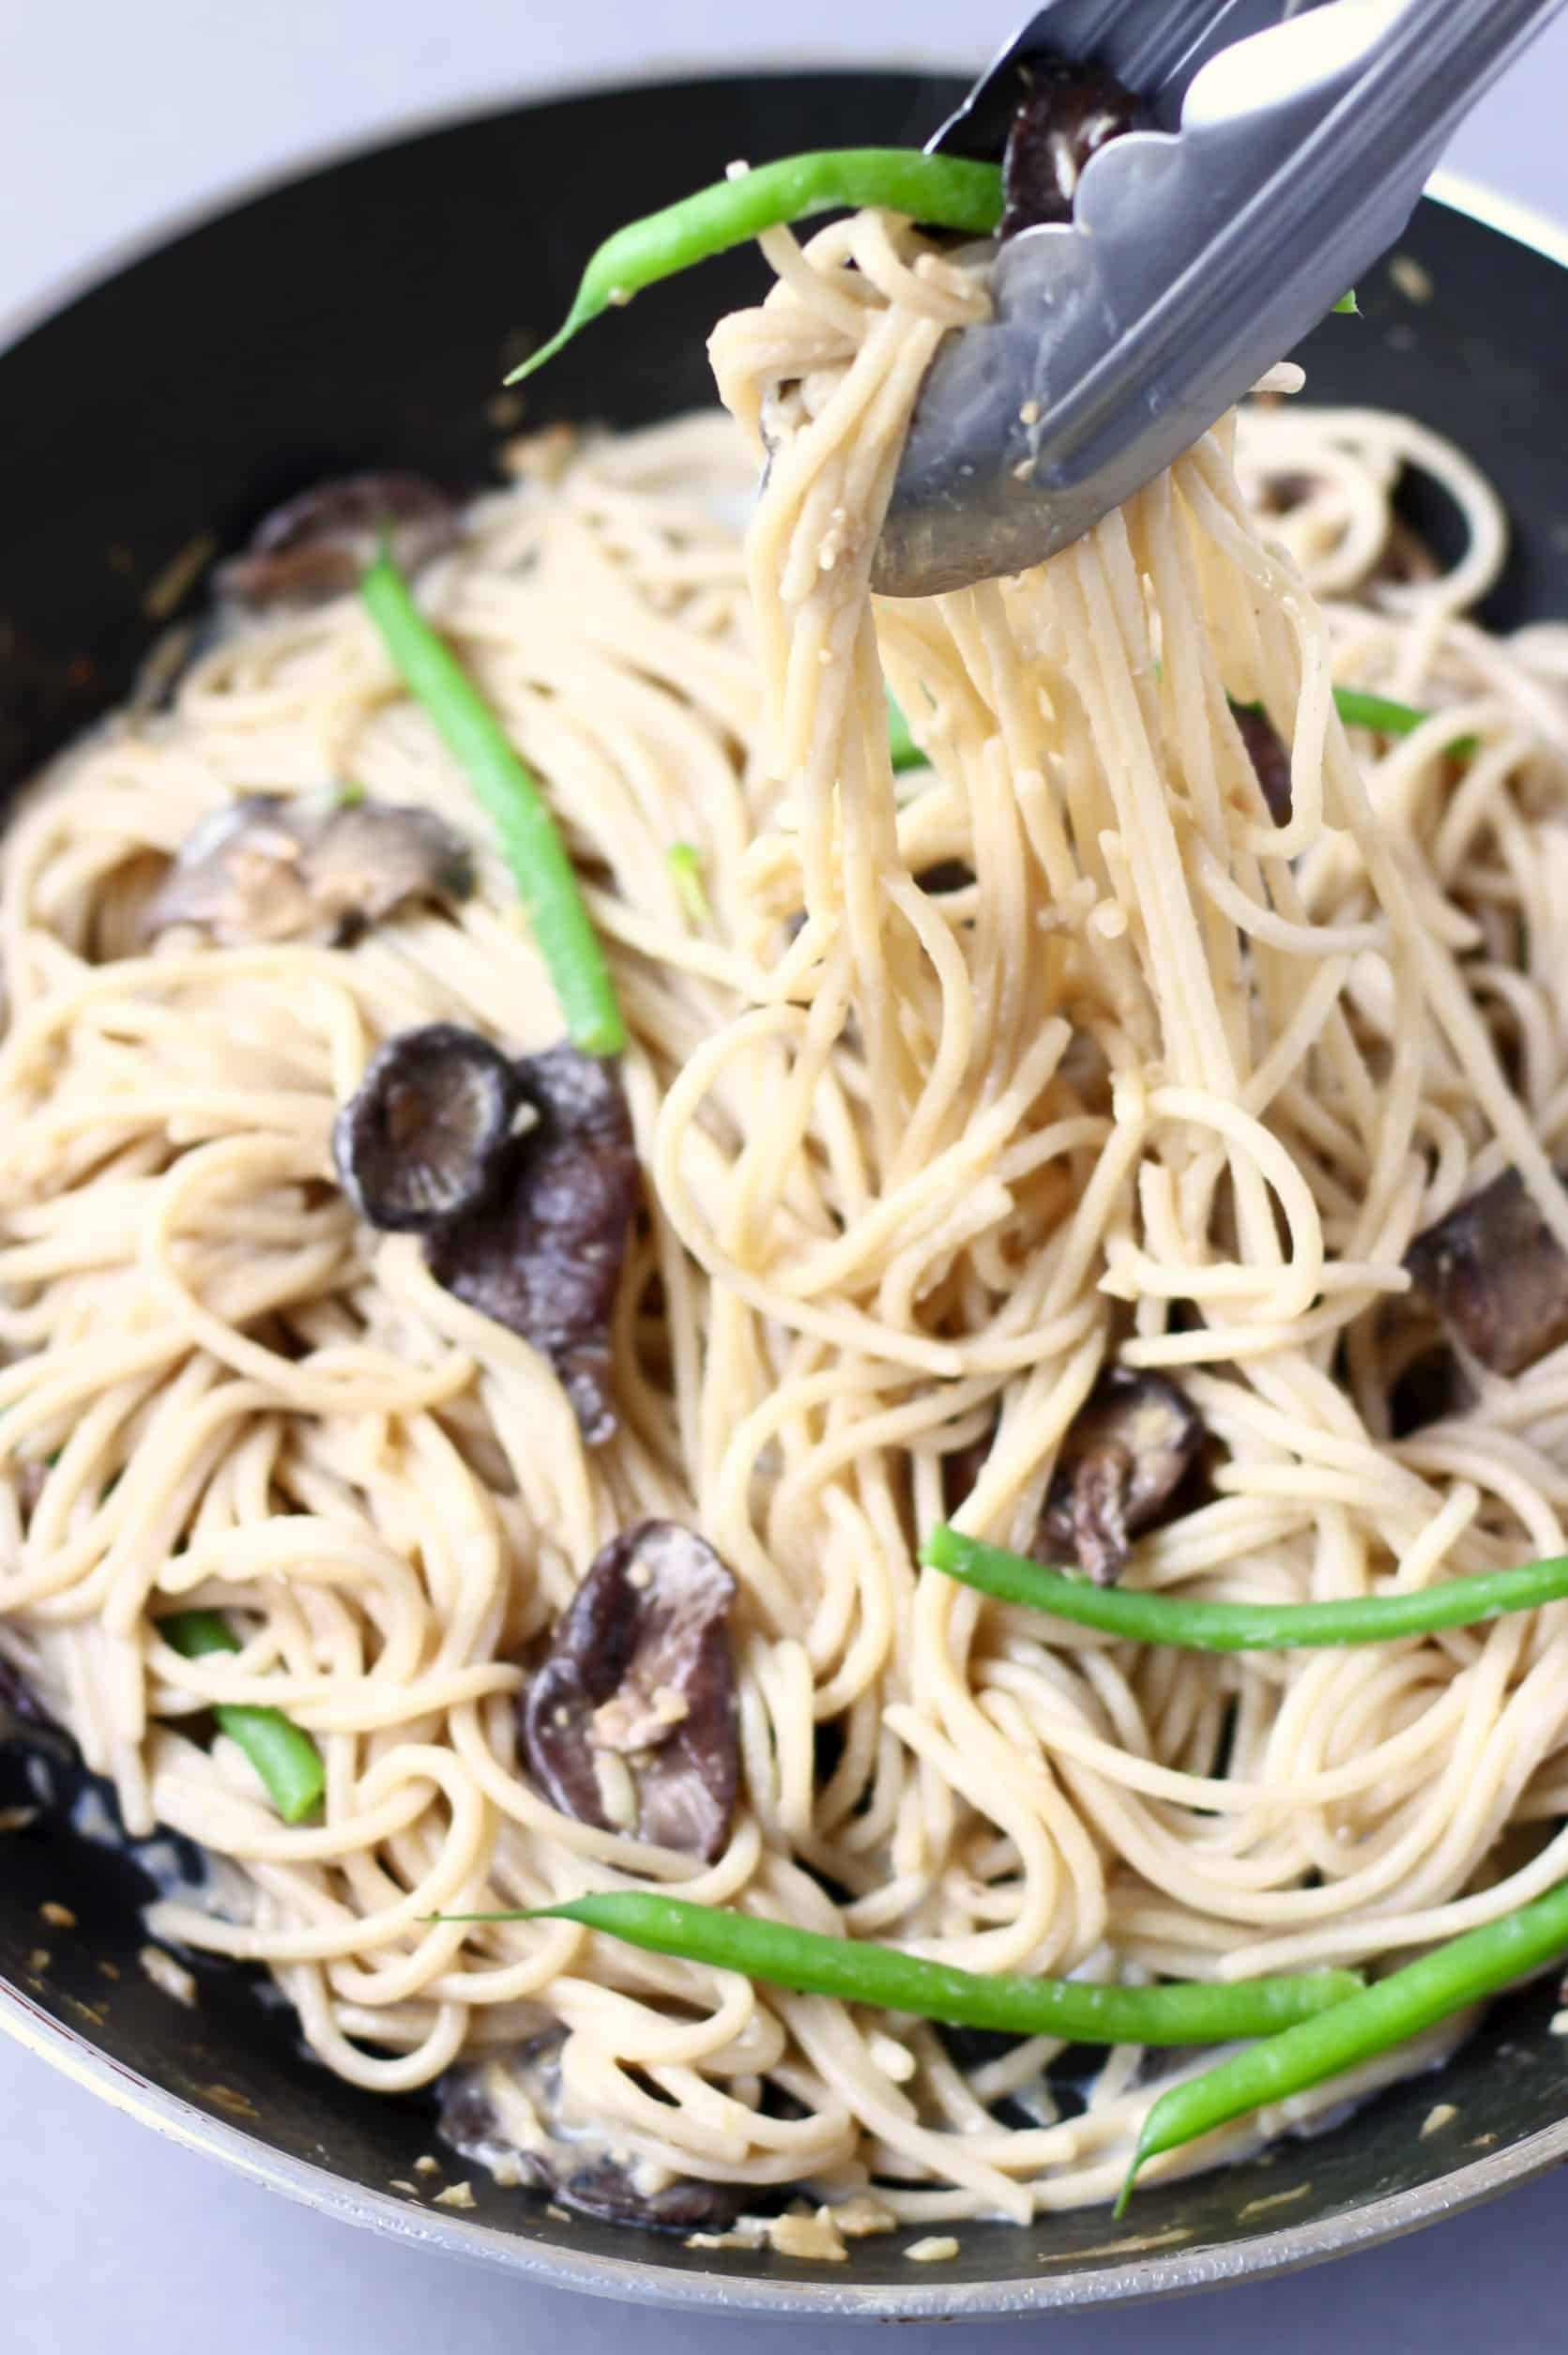 Spaghetti with creamy vegan miso pasta sauce, shiitake mushrooms and French beans being lifted up with tongs in a black frying pan